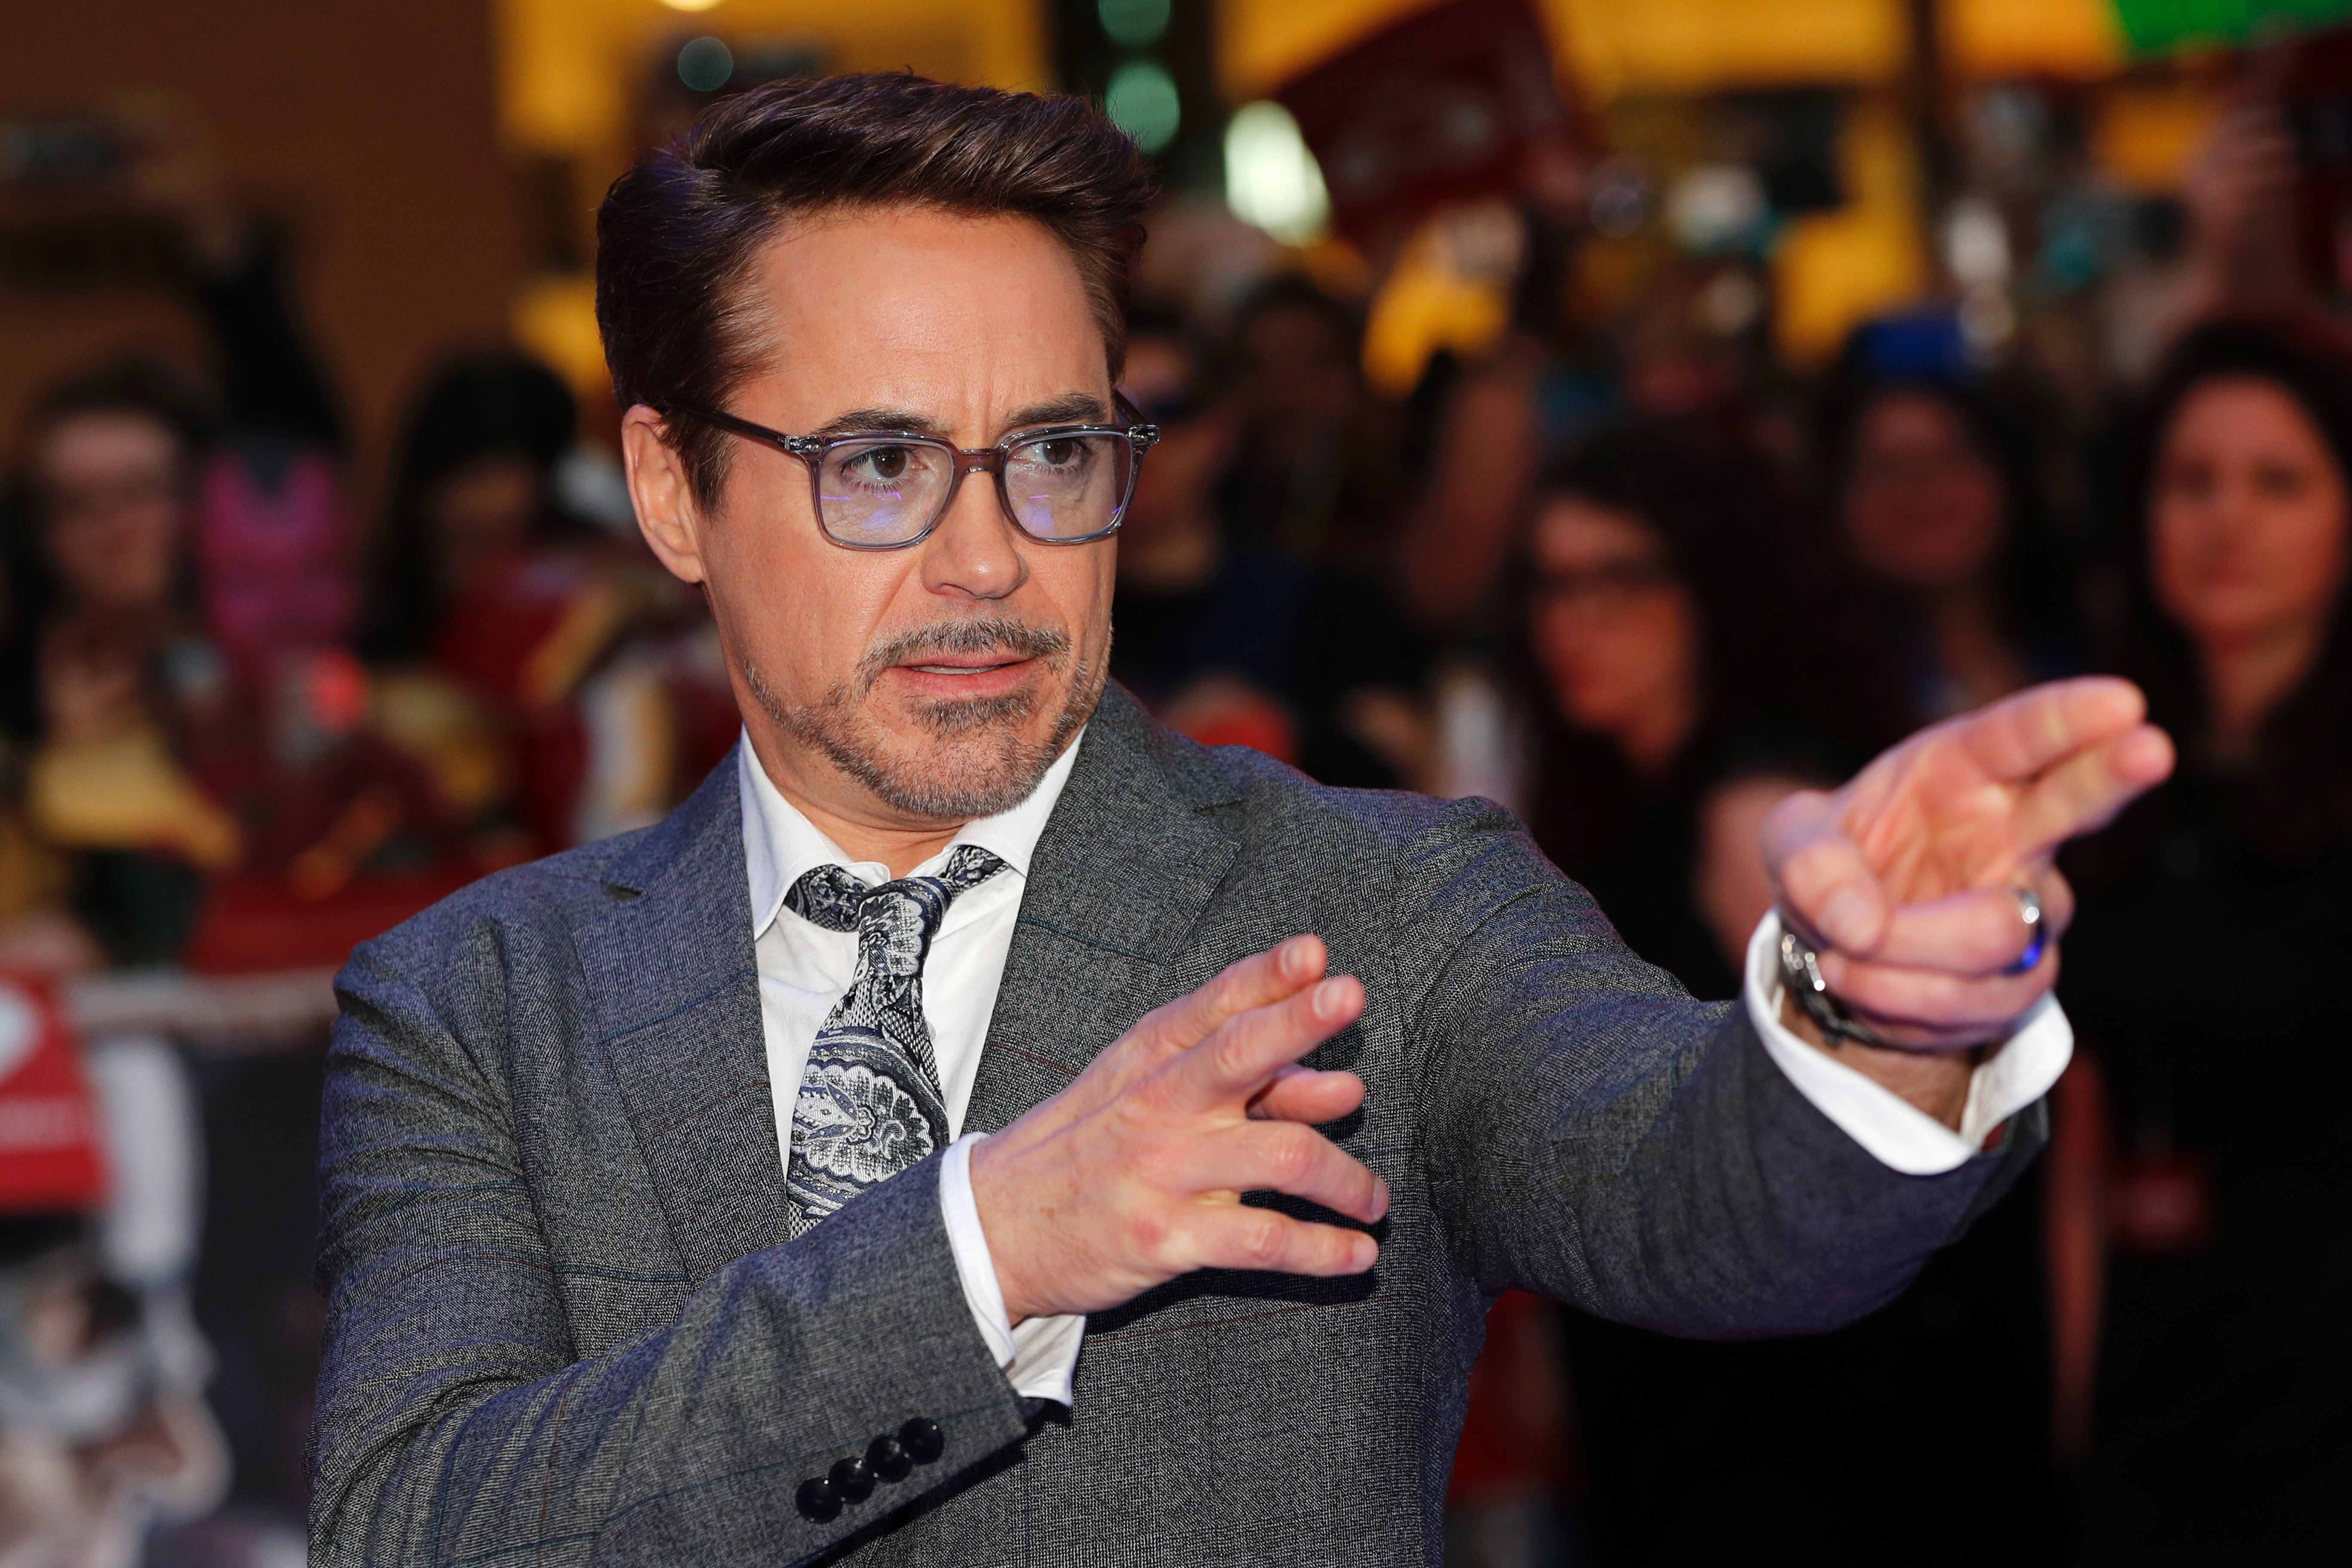 US actor Robert Downey Jr. poses on the red carpet arriving for the European Premiere of the film Captain America: Civil War in London on April 26, 2016 / AFP / ADRIAN DENNIS        (Photo credit should read ADRIAN DENNIS/AFP/Getty Images)